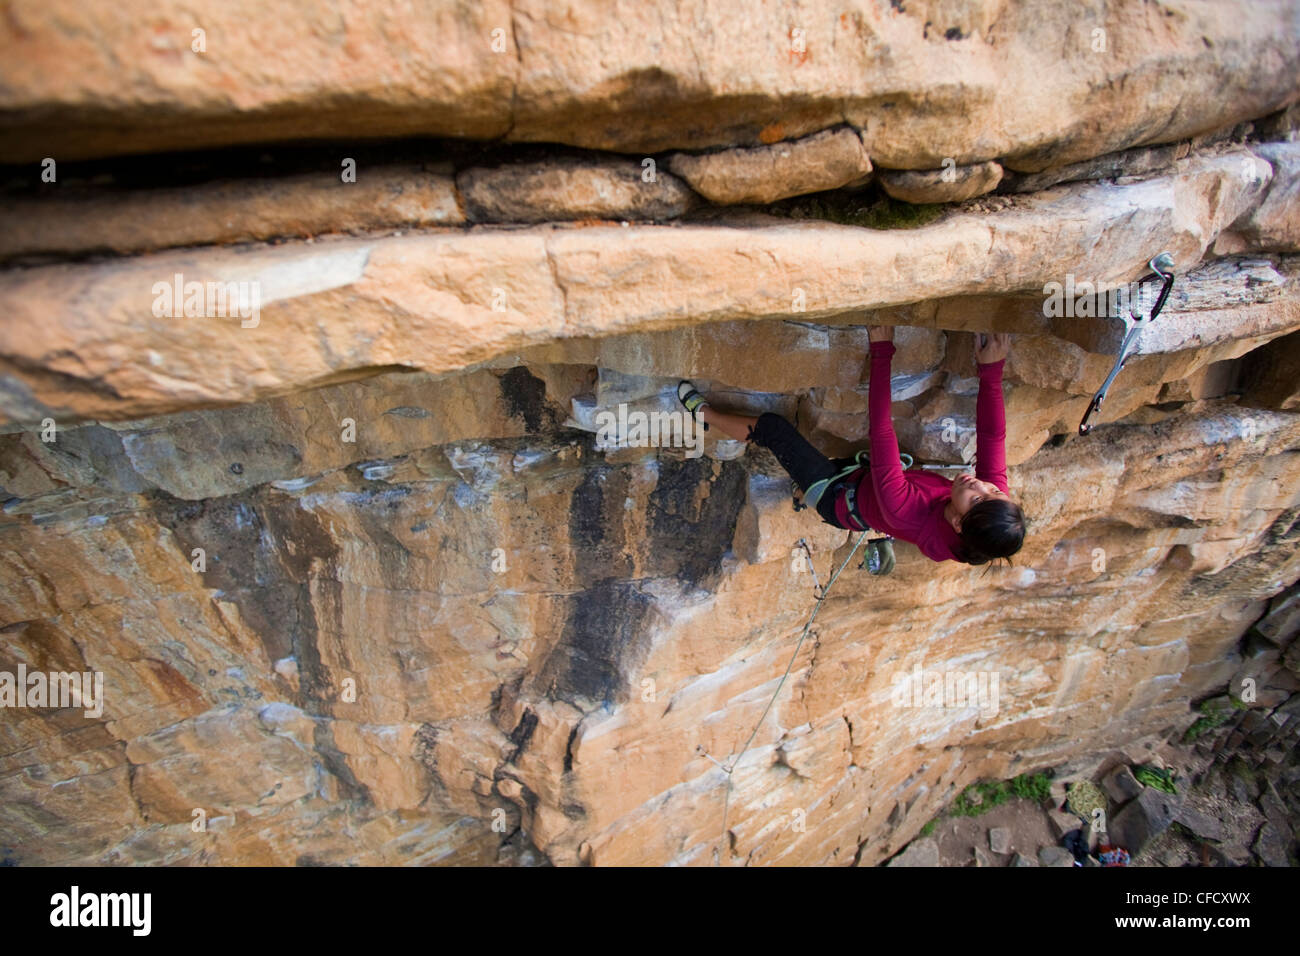 A young strong asian woman rockclimbing at Lost Boys crag in Jasper National Park, Alberta, Canada - Stock Image